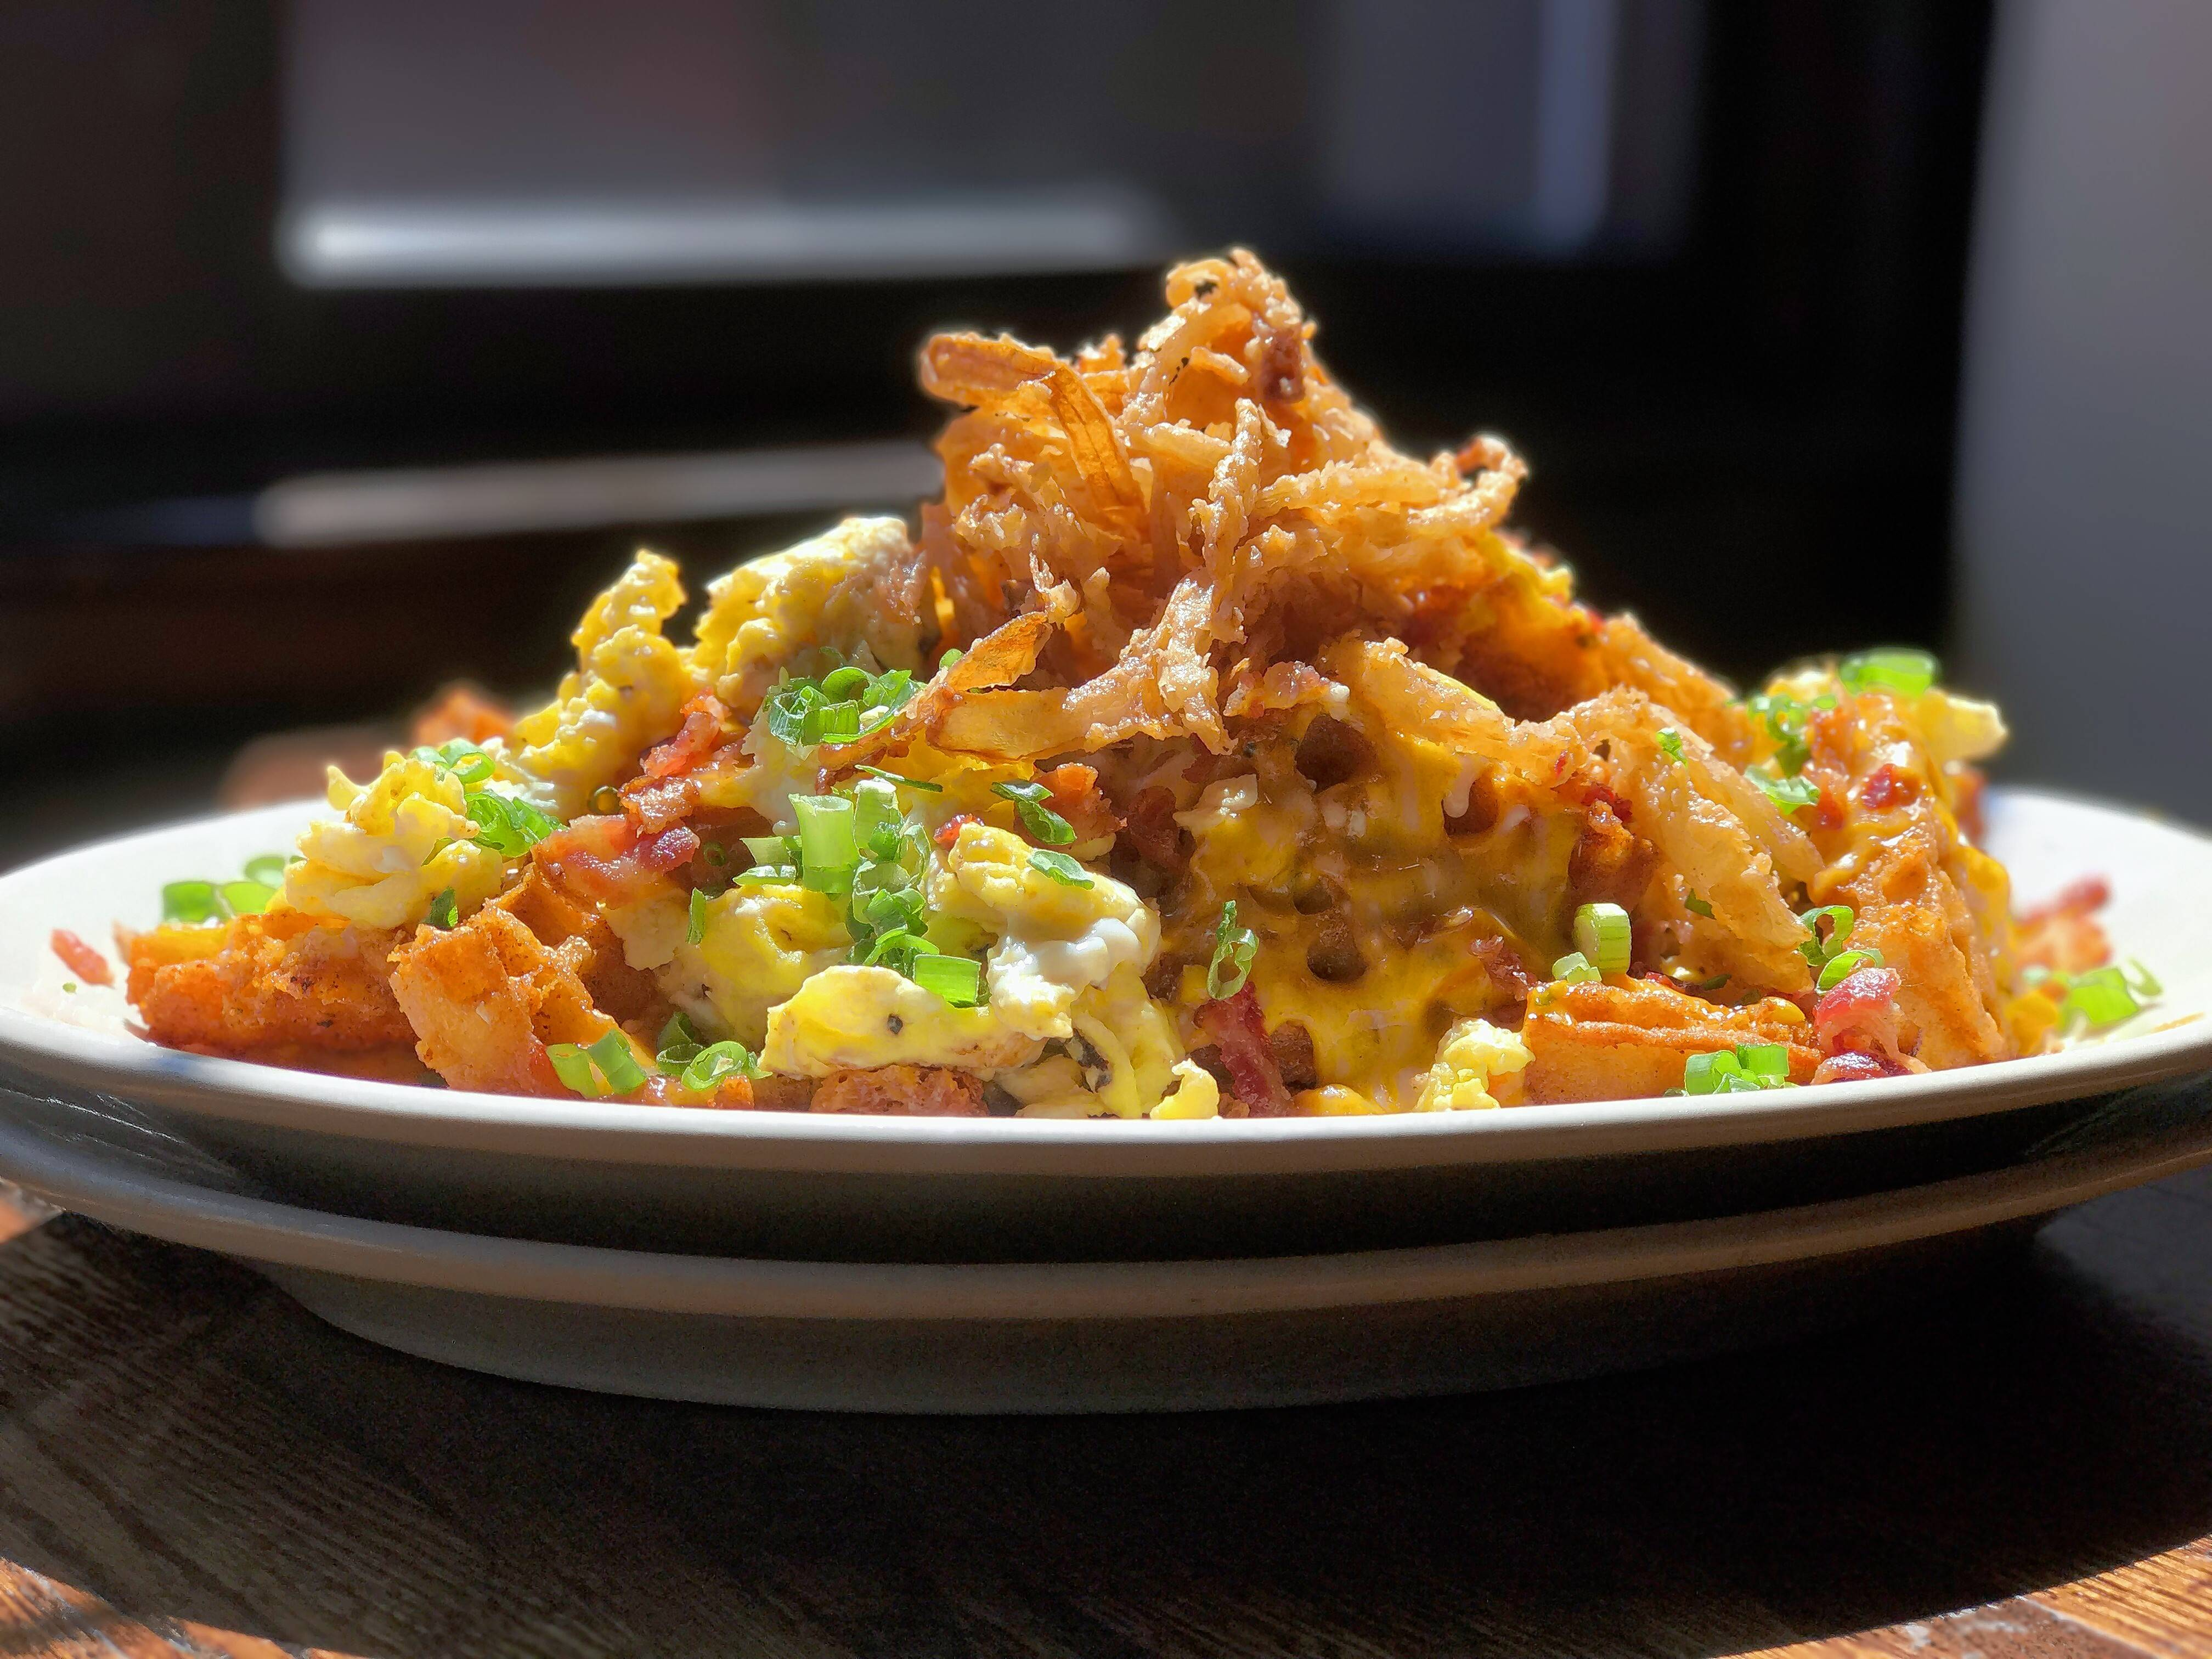 Rack House will serve Waffle Breakfast Nachos (crispy waffle chips, bacon, scrambled eggs, scallions, cheese and crispy onions) during the Pajamas Brunch on New Year's Day.